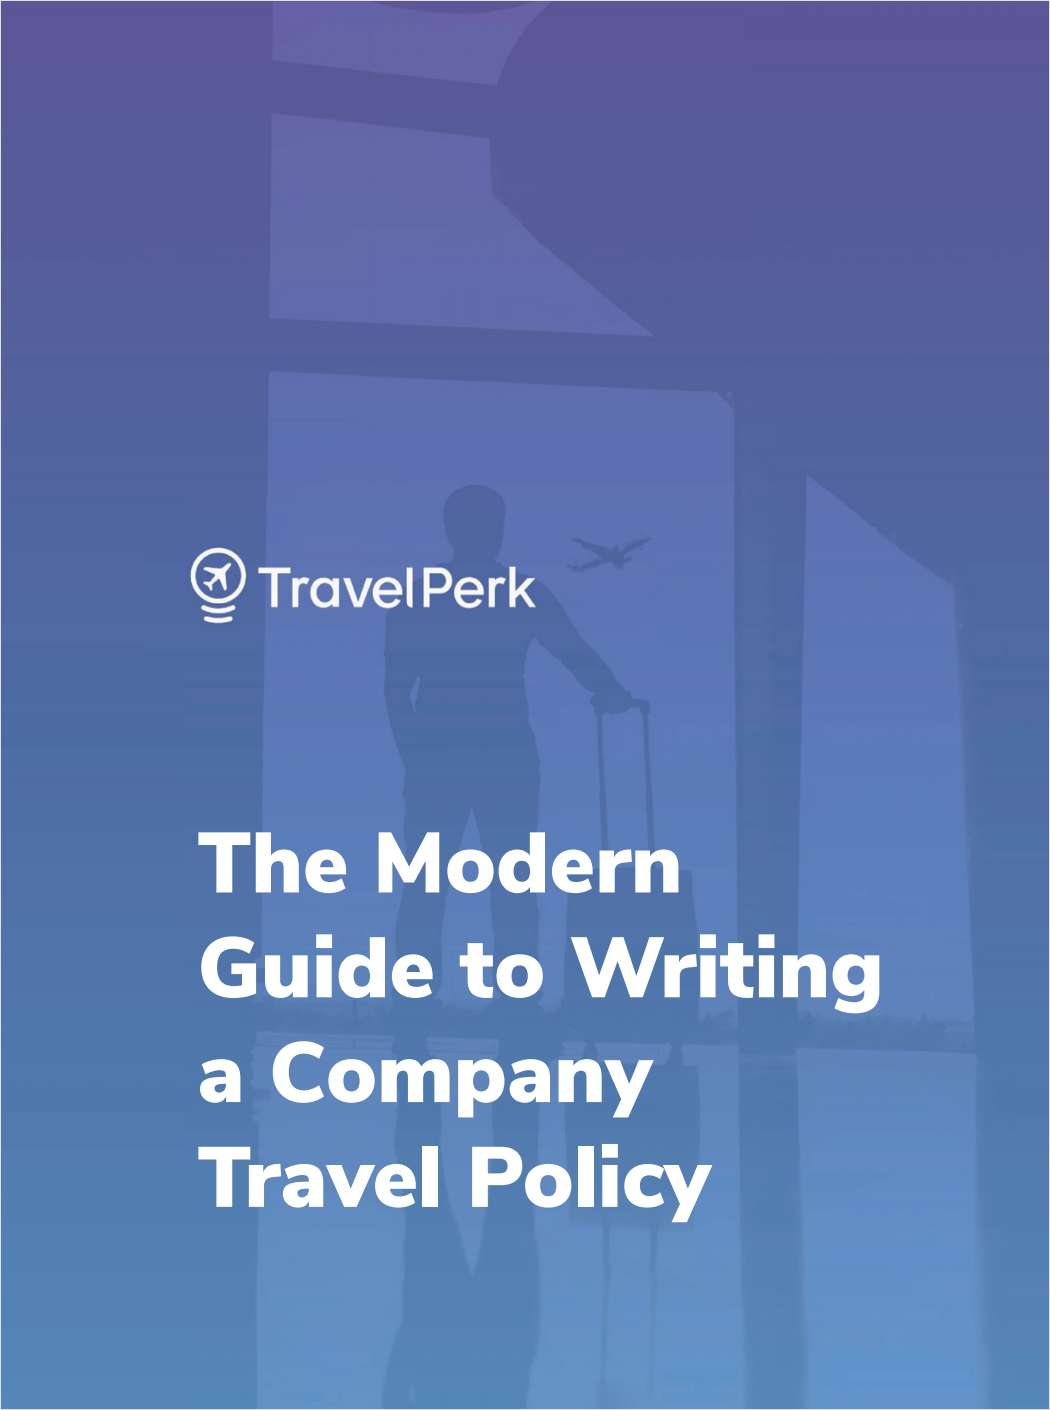 The Modern Guide to Writing a Company Travel Policy